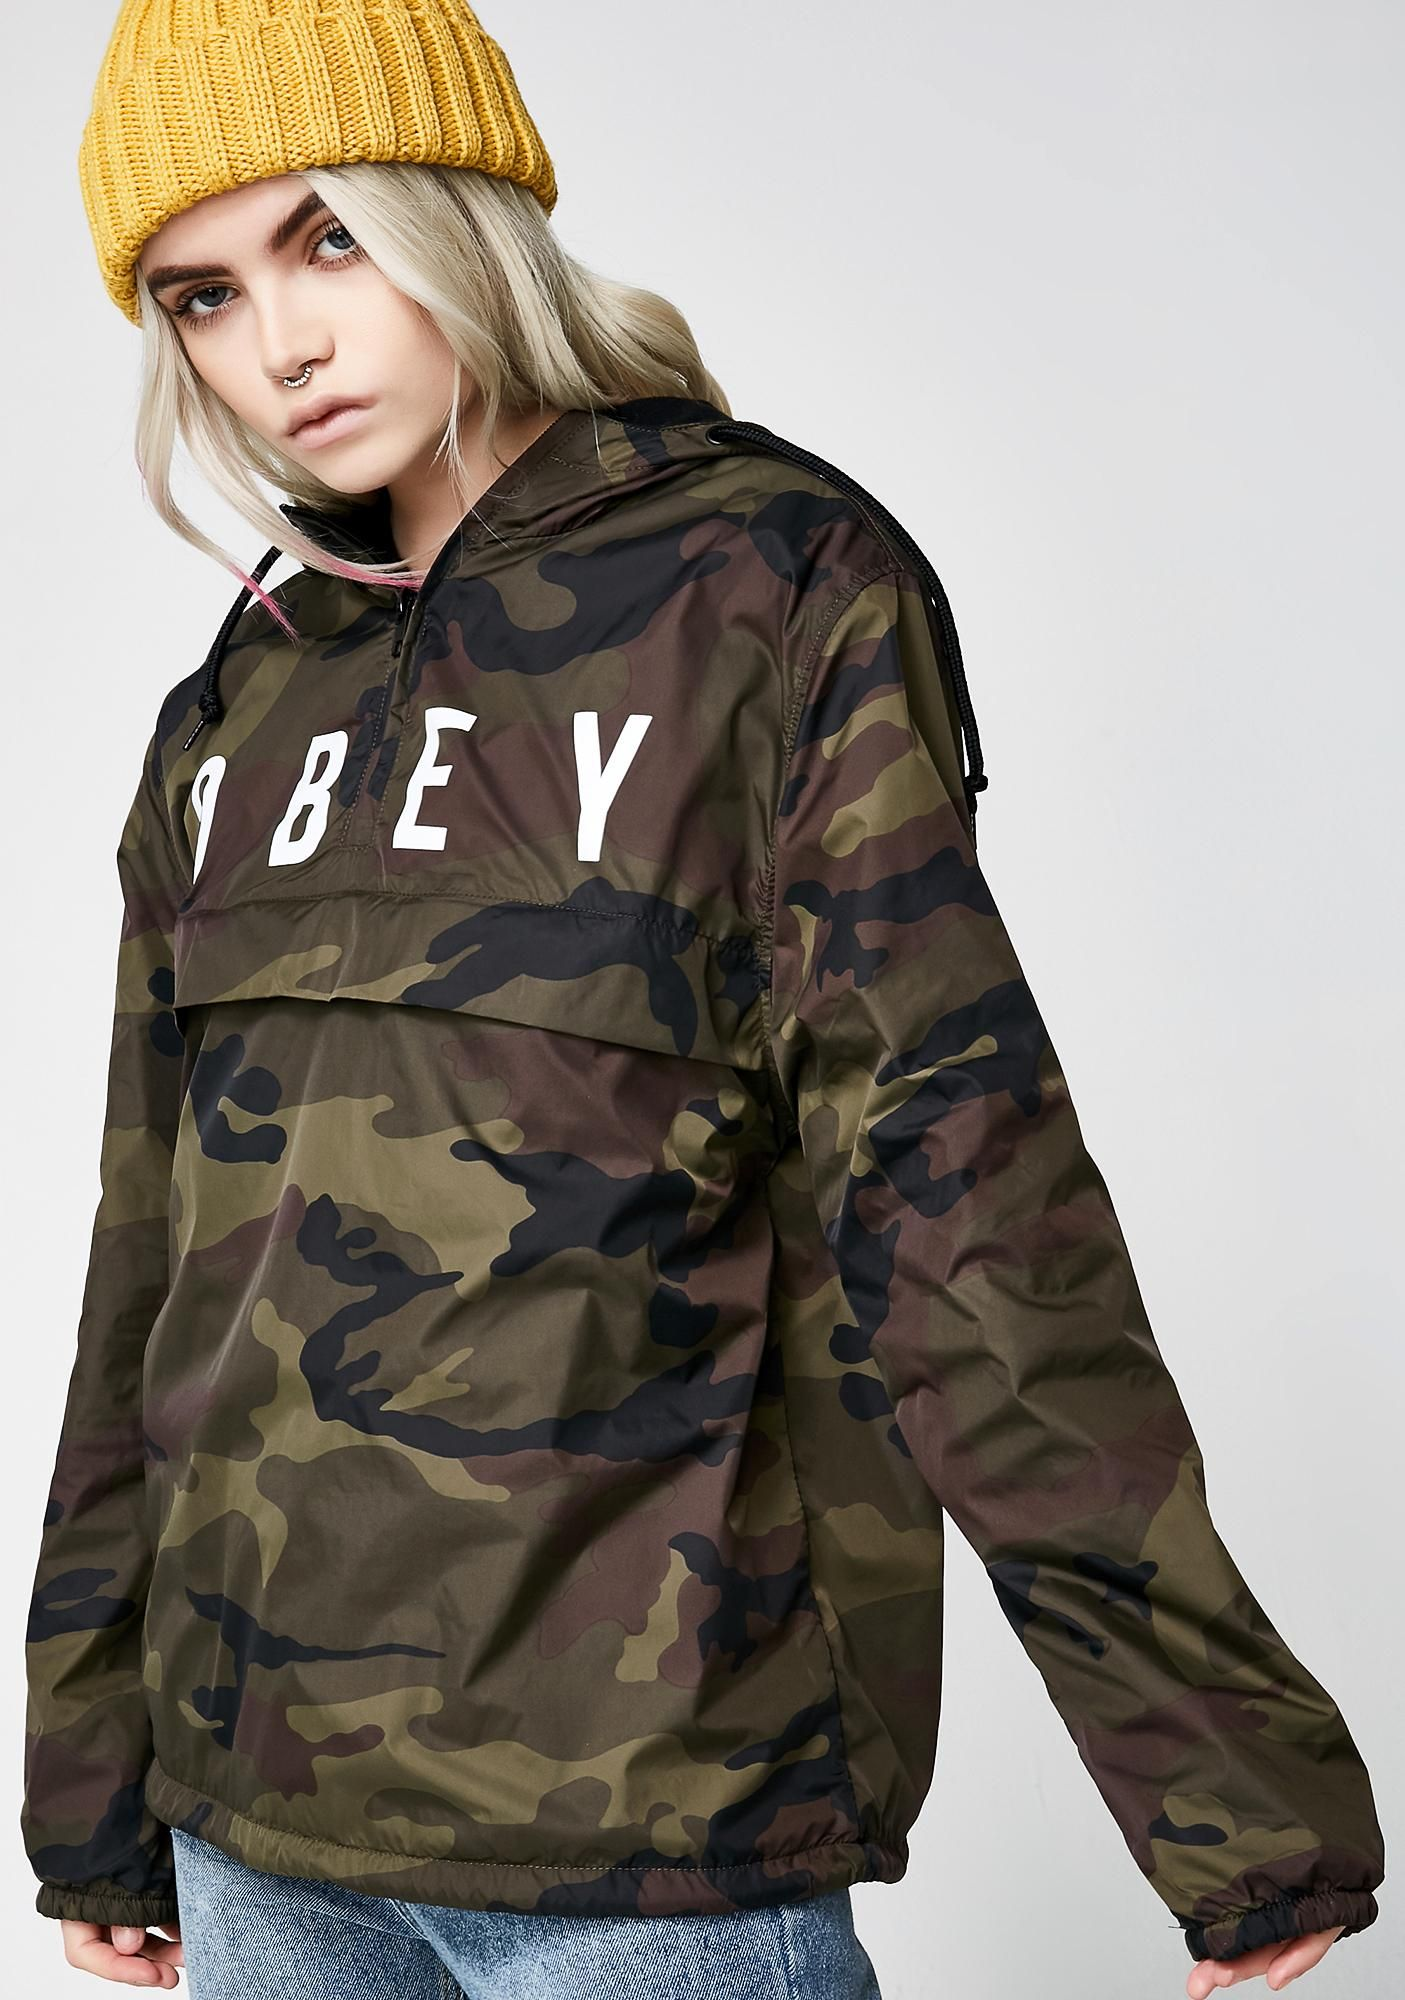 ae956806c622 75 Obey Anyway Anorak Coach Jacket cuz you ll do it anyway! Do what you  want with this lightweight anorak coach jacket that has a logo on the  front